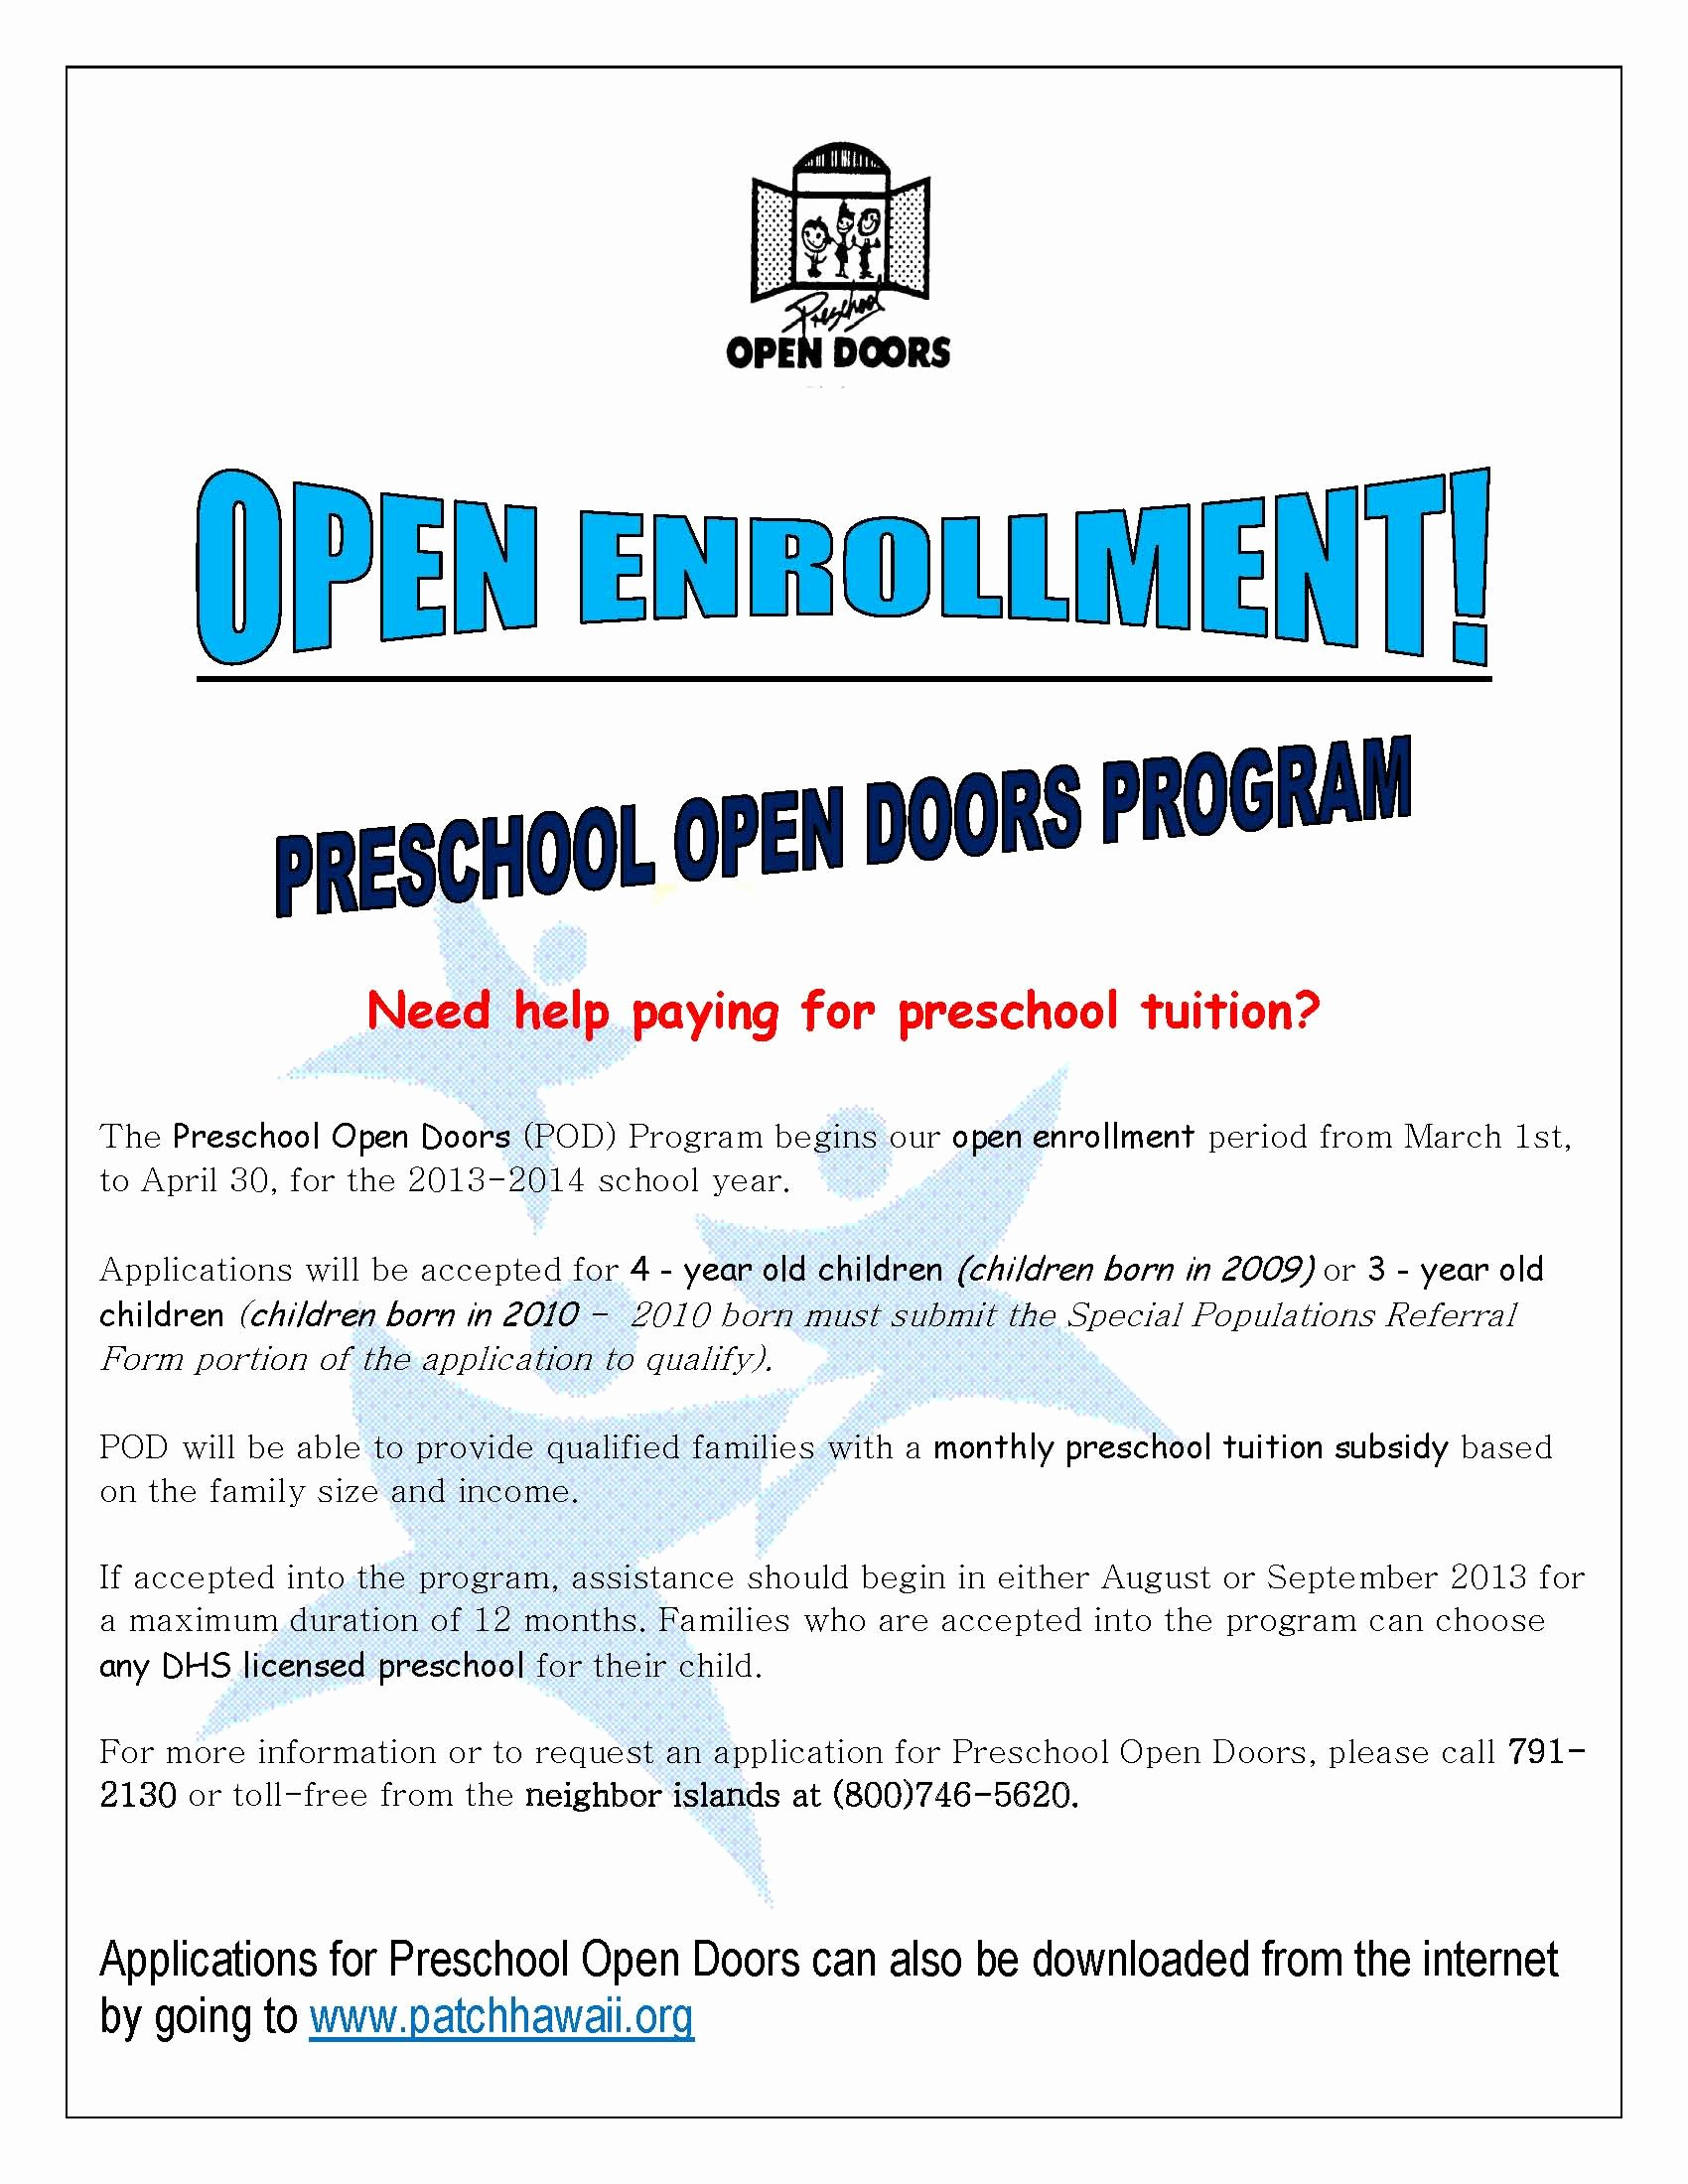 Open Enrollment Letter Template Unique Preschool Open Doors Open Enrollment Notice